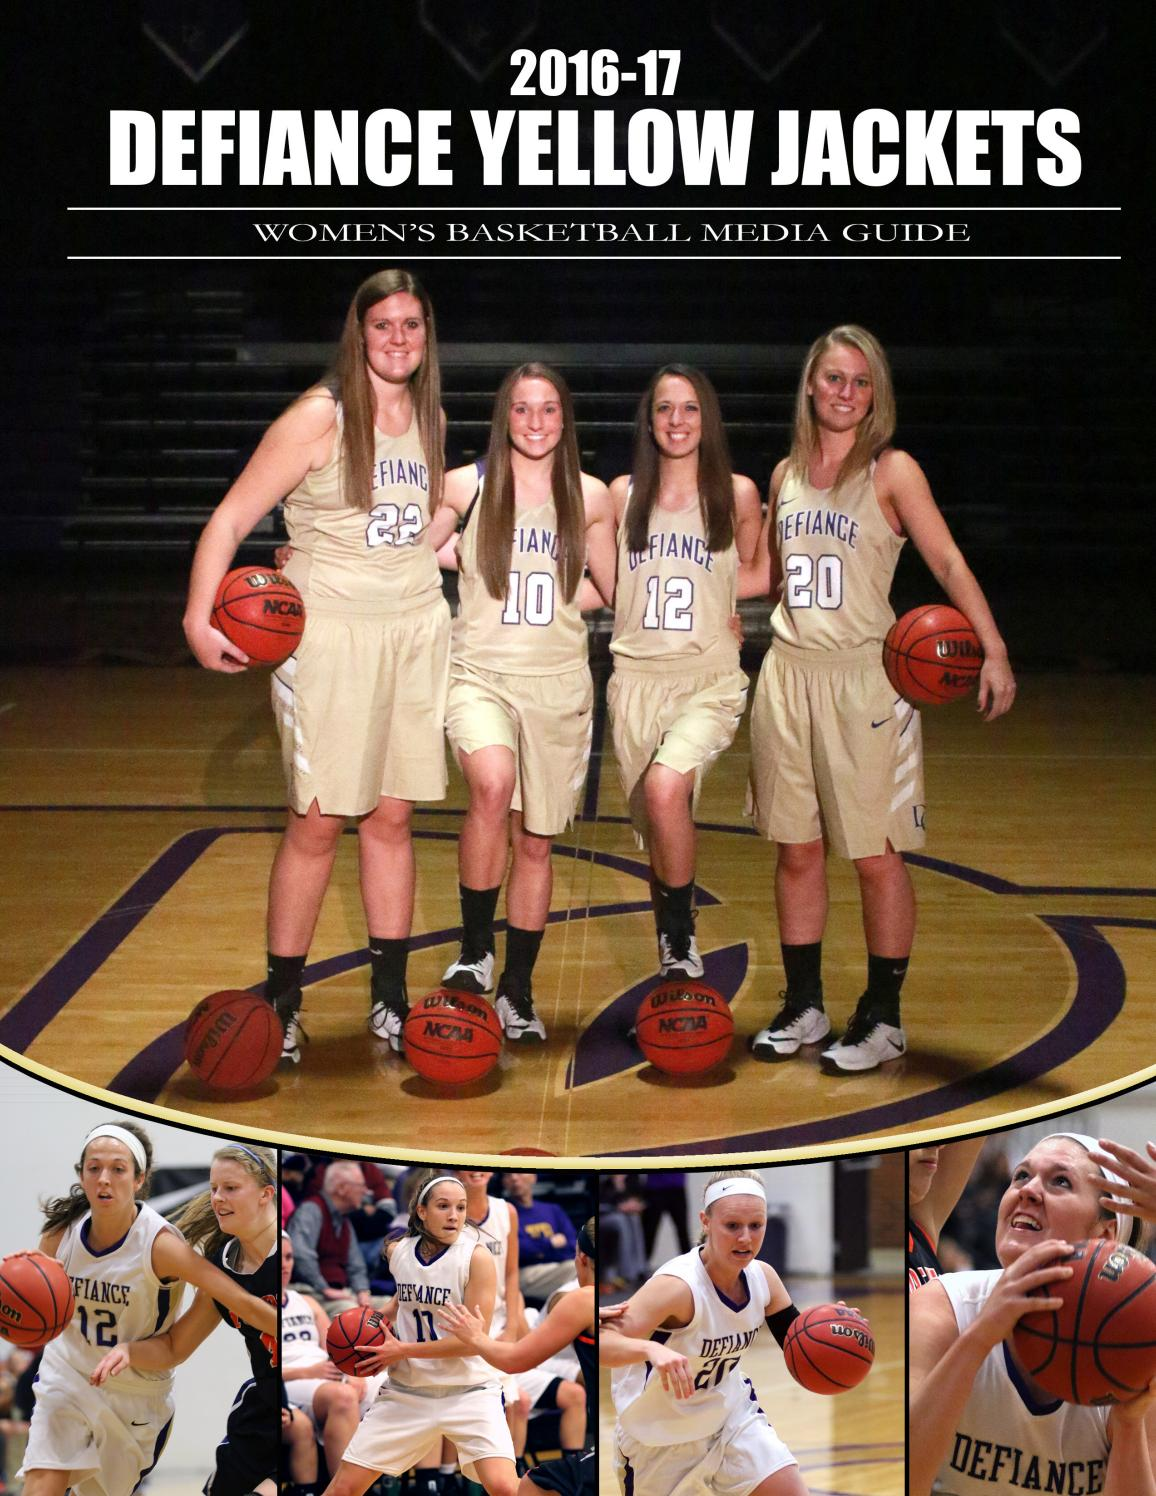 1c03fbb8a 2016 17wbbmediaguide by Defiance College - issuu